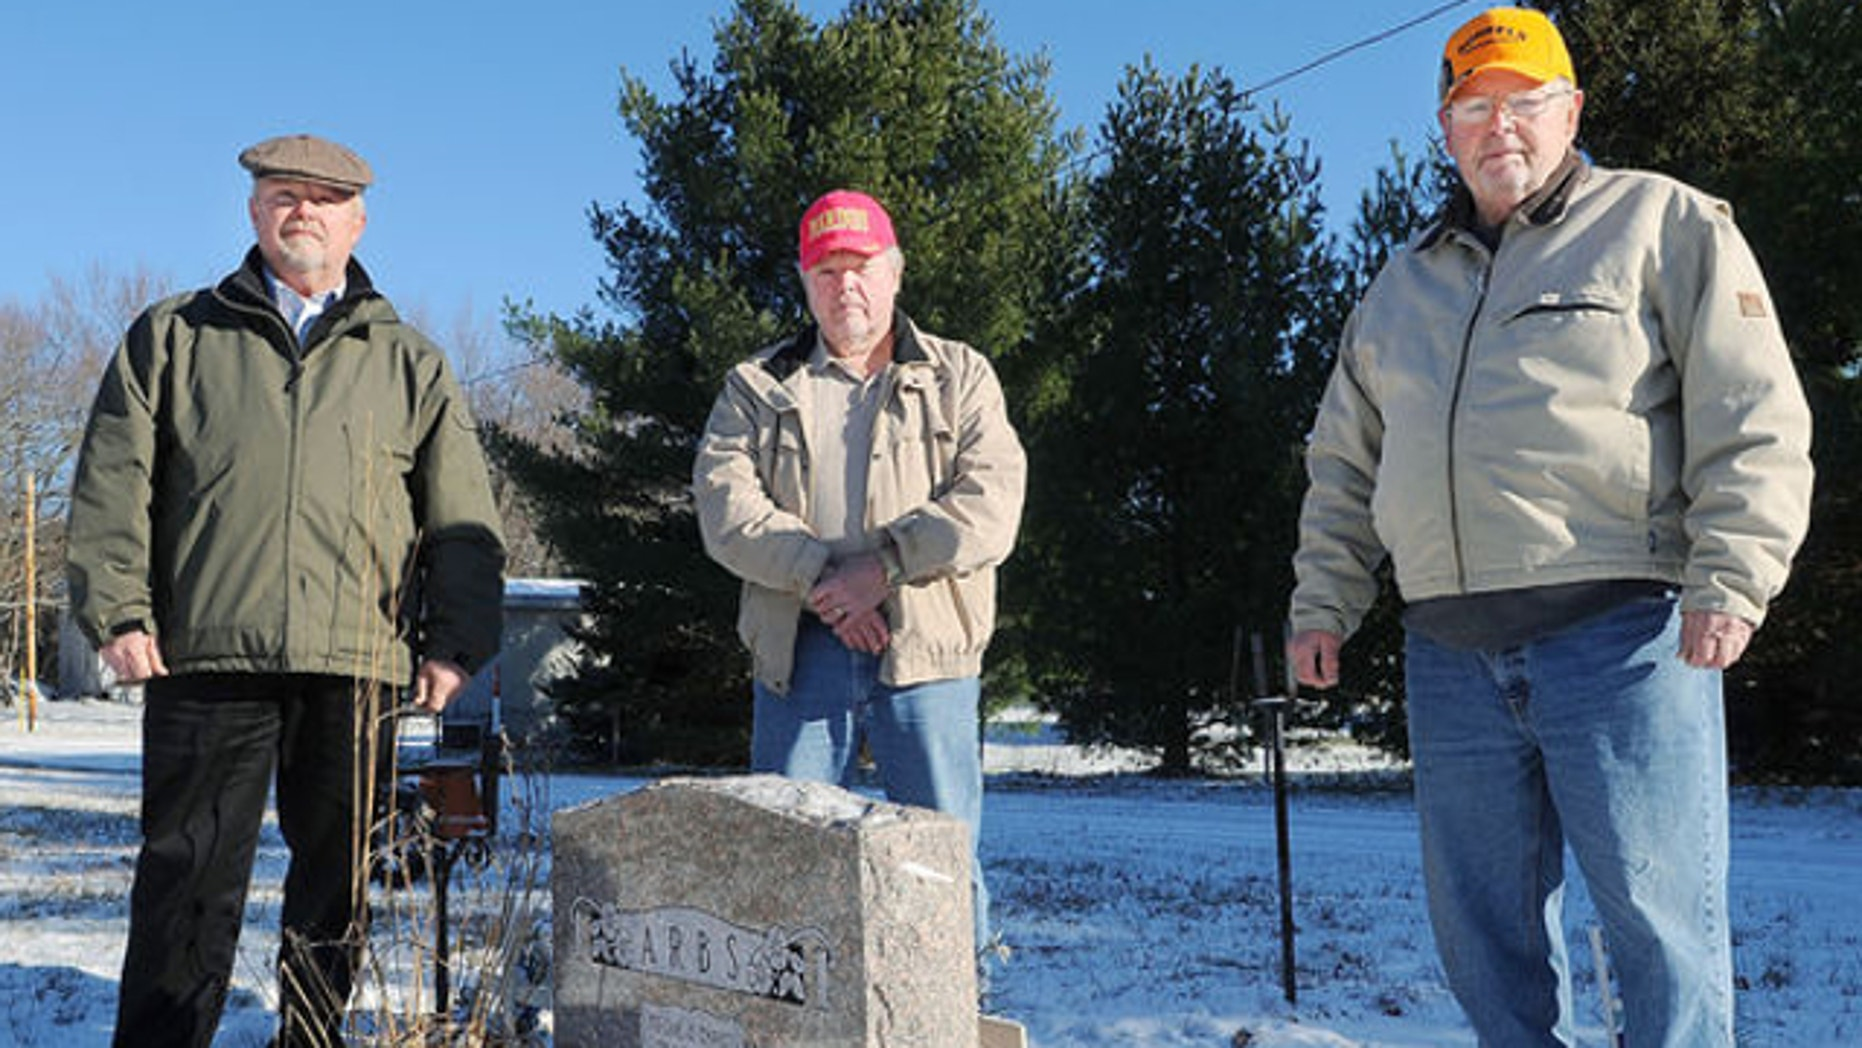 """Nov. 22, 2013: Brothers, from left, Dean, David and Louis """"Andy"""" Arbs, pose at the family grave site of their grandparents, Louis and Anny Arbs, at Oak Grove Cemetery in Eau Claire, Wis."""